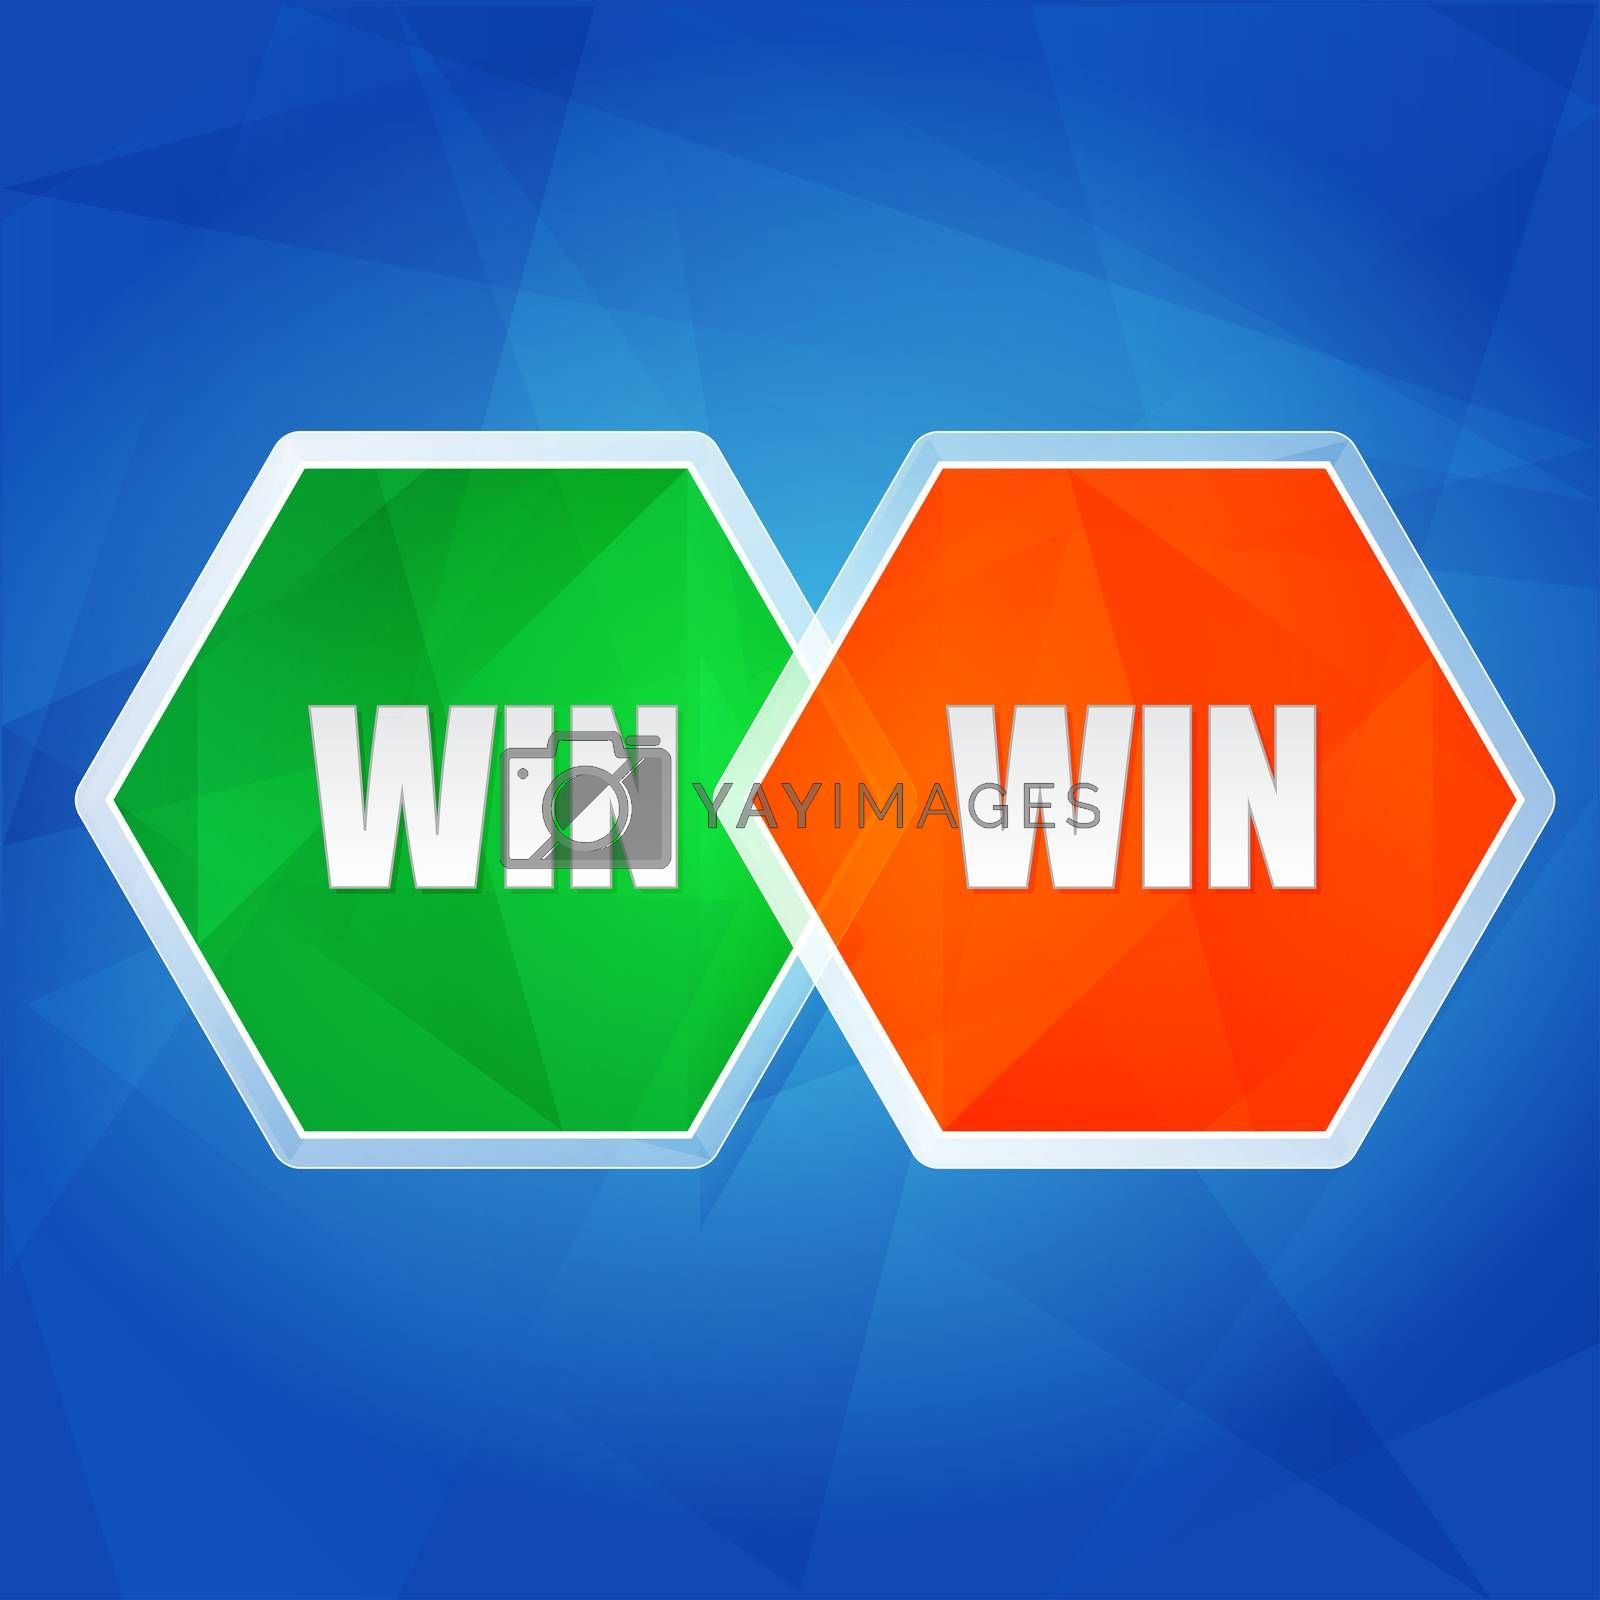 Royalty free image of win win in hexagons, flat design by marinini